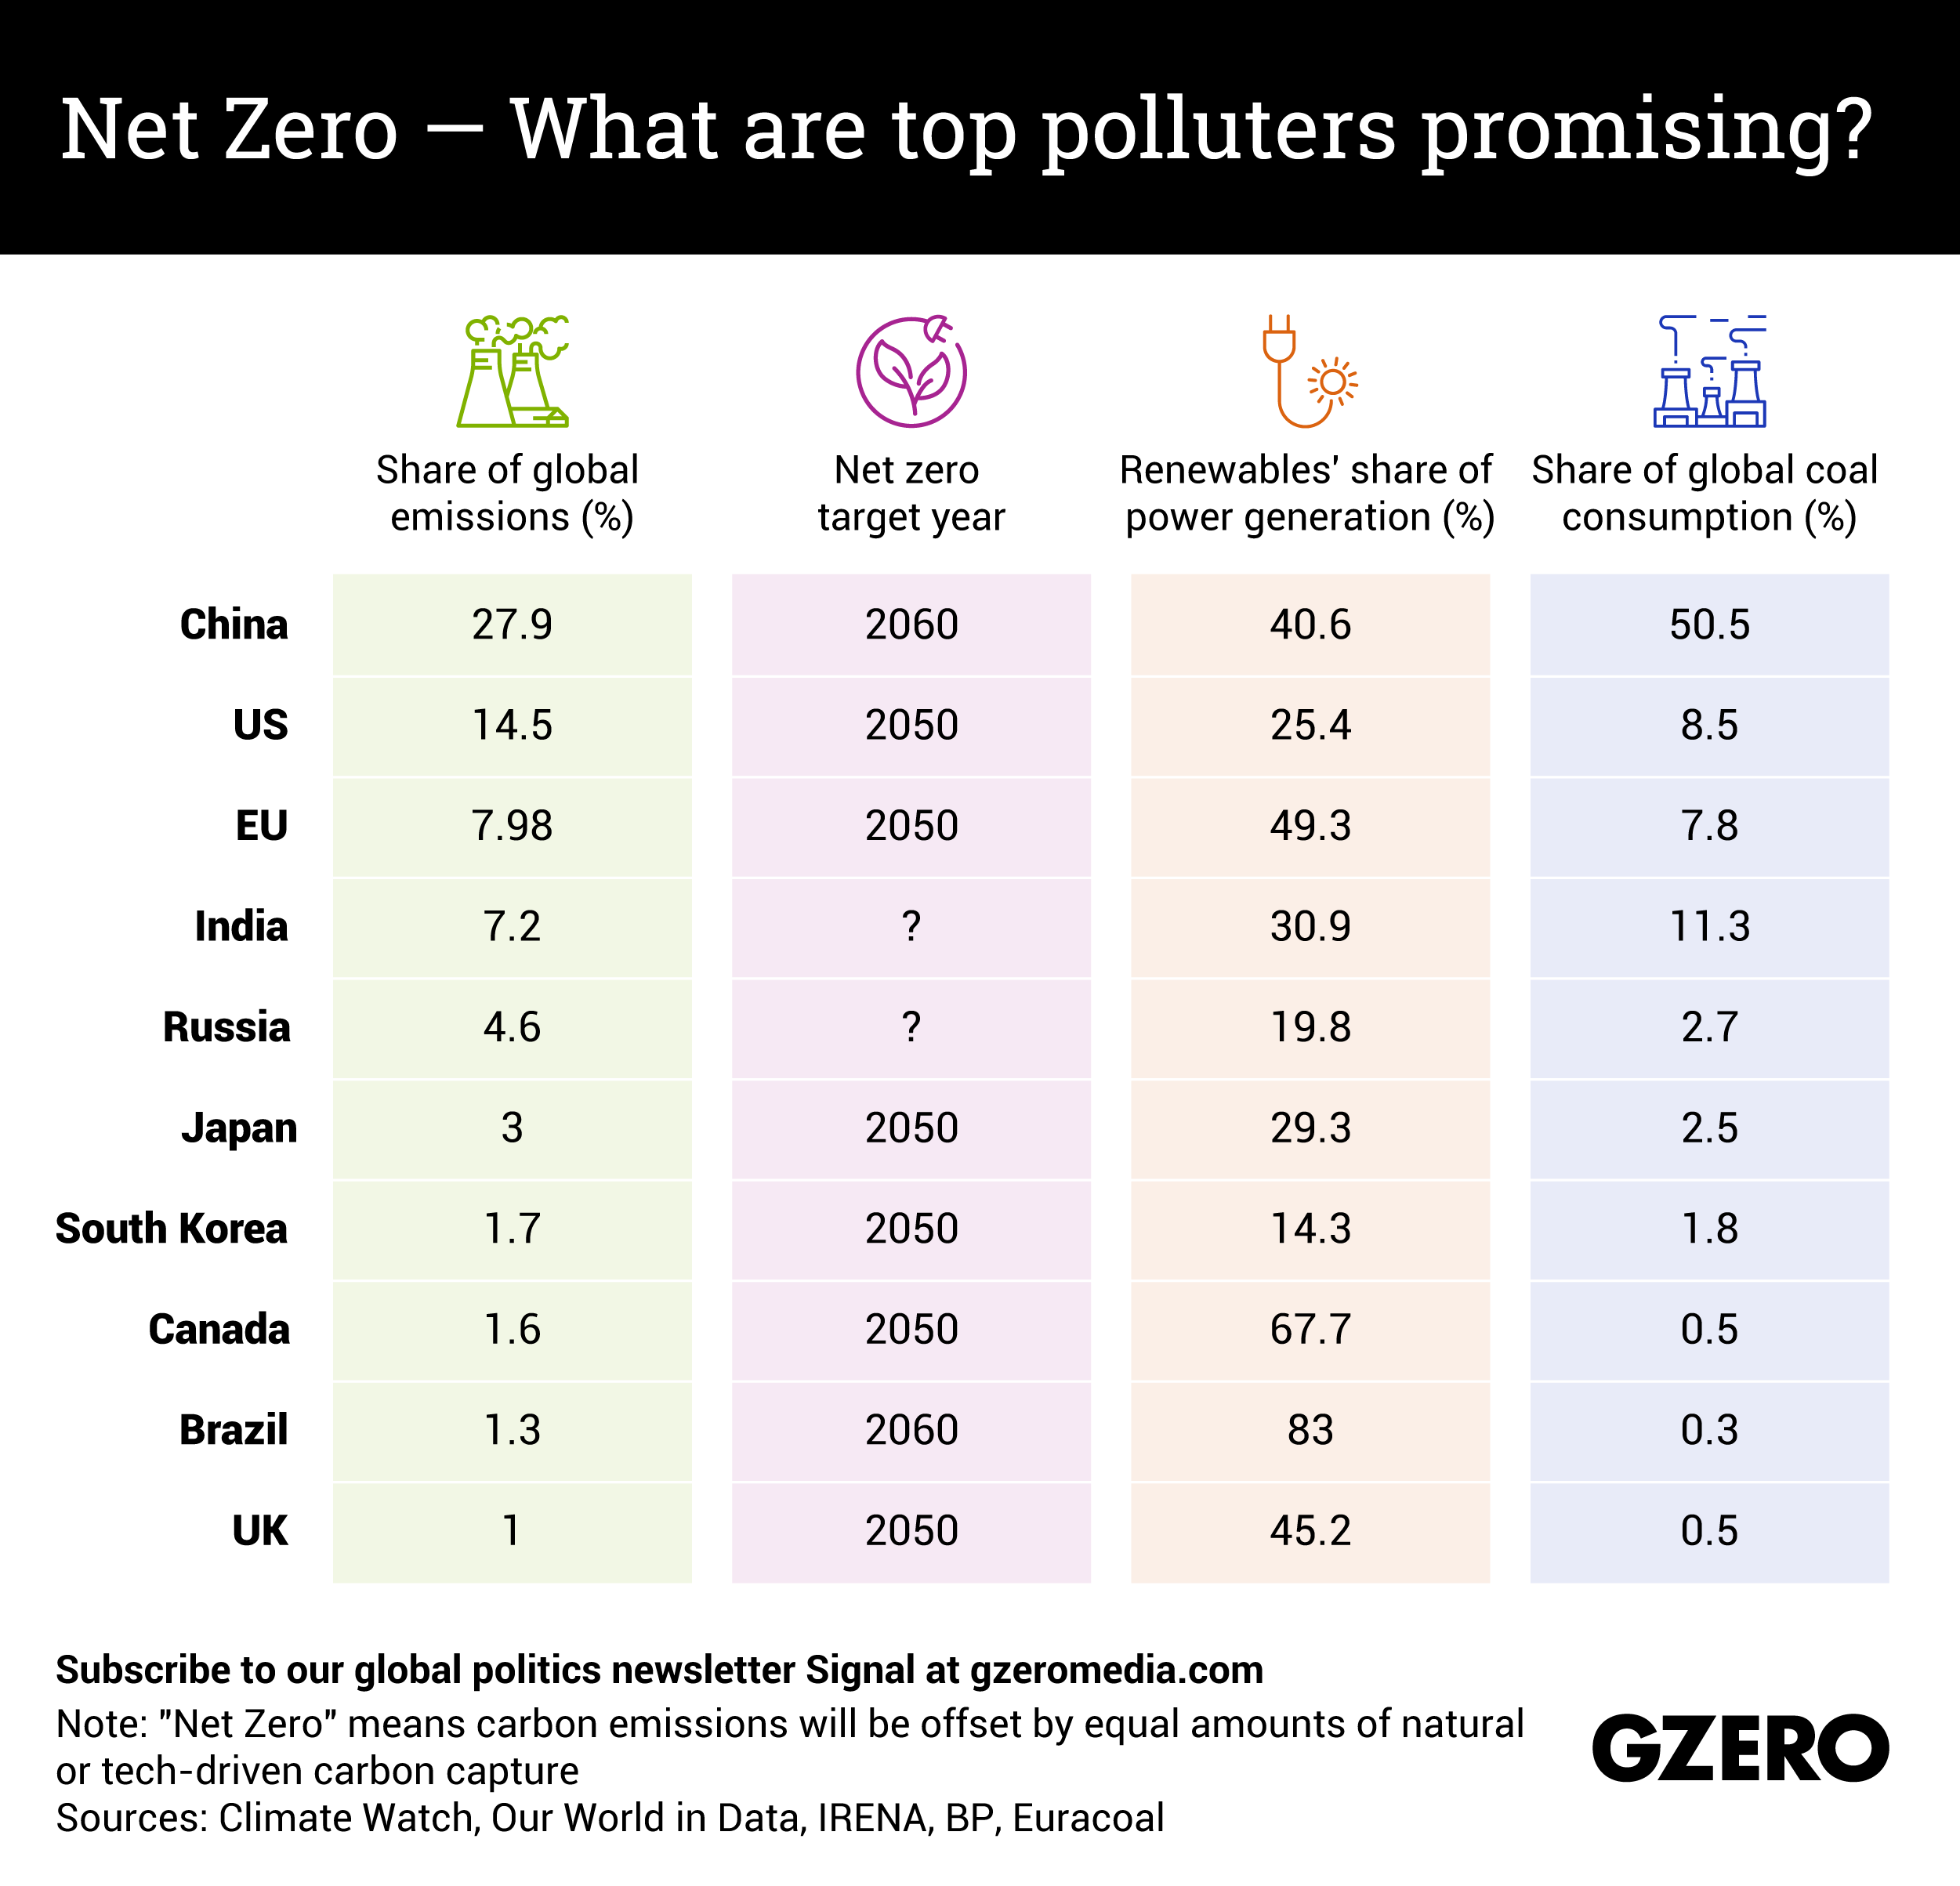 The Graphic Truth: Net Zero — What are the top polluters promising?